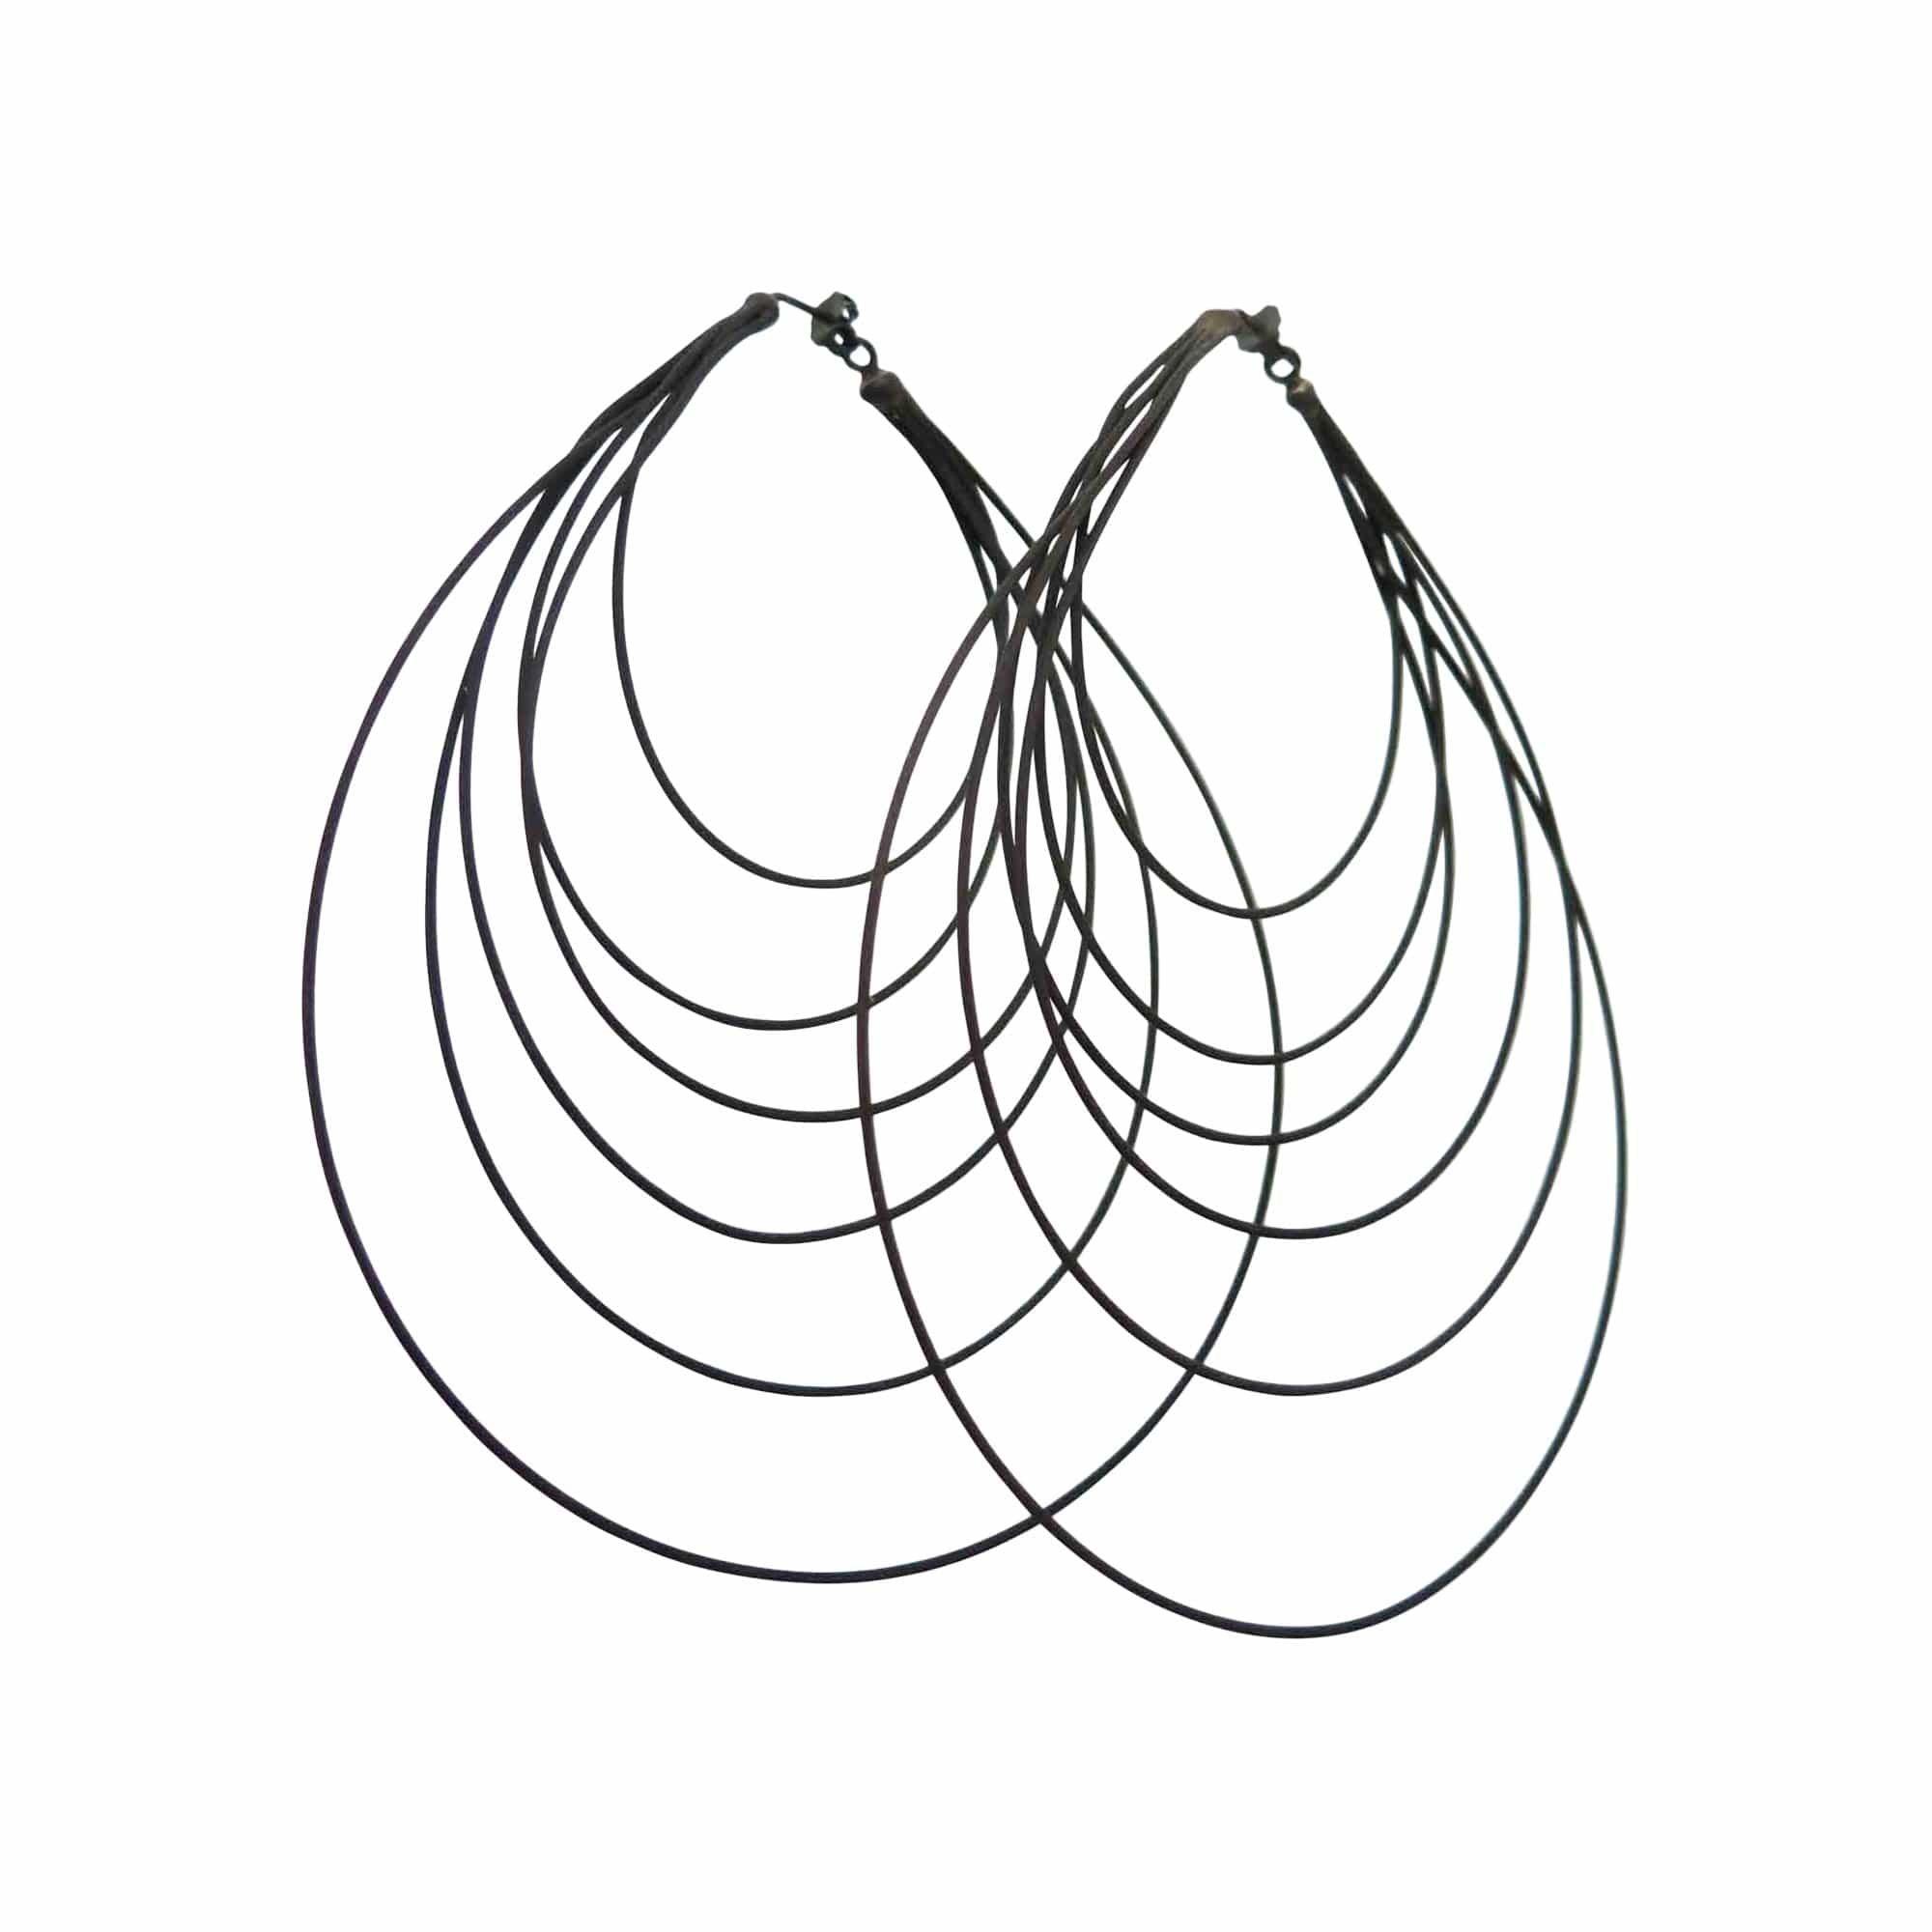 Ex Ovo Earrings Large / Black Oxidized Multi Multi Cable Eearrings